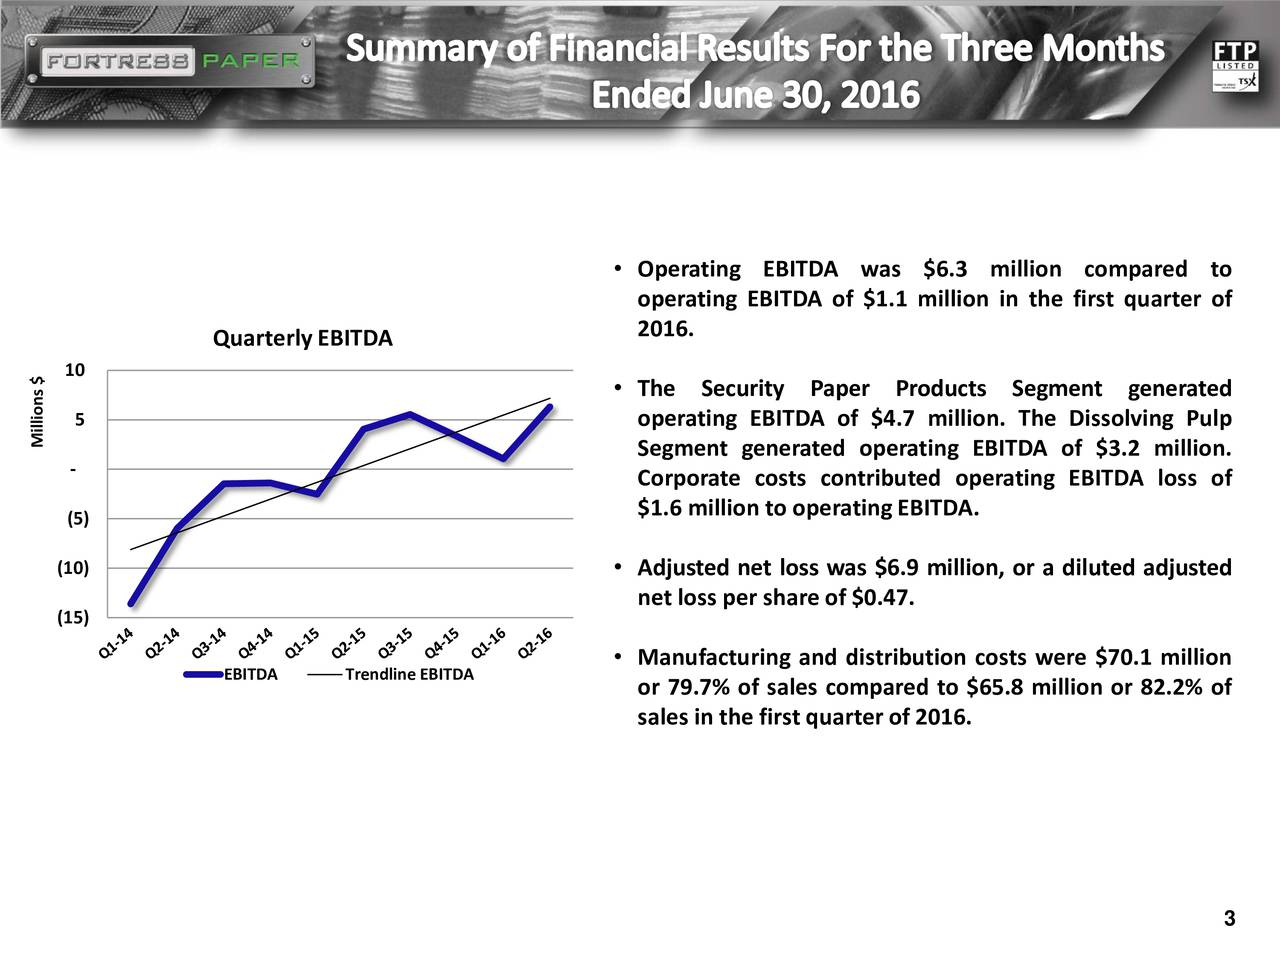 operating EBITDA of $1.1 million in the first quarter of QuarterlyEBITDA 2016. 10 The Security Paper Products Segment generated 5 operating EBITDA of $4.7 million. The Dissolving Pulp Millions $ Segment generated operating EBITDA of $3.2 million. - Corporate costs contributed operating EBITDA loss of (5) $1.6 million to operatingEBITDA. (10)  Adjusted net loss was $6.9 million, or a diluted adjusted net loss per shareof $0.47. (15) Manufacturing and distribution costs were $70.1 million EBITDA Trendline EBITDA or 79.7% of sales compared to $65.8 million or 82.2% of sales in the first quarter of 2016. 3